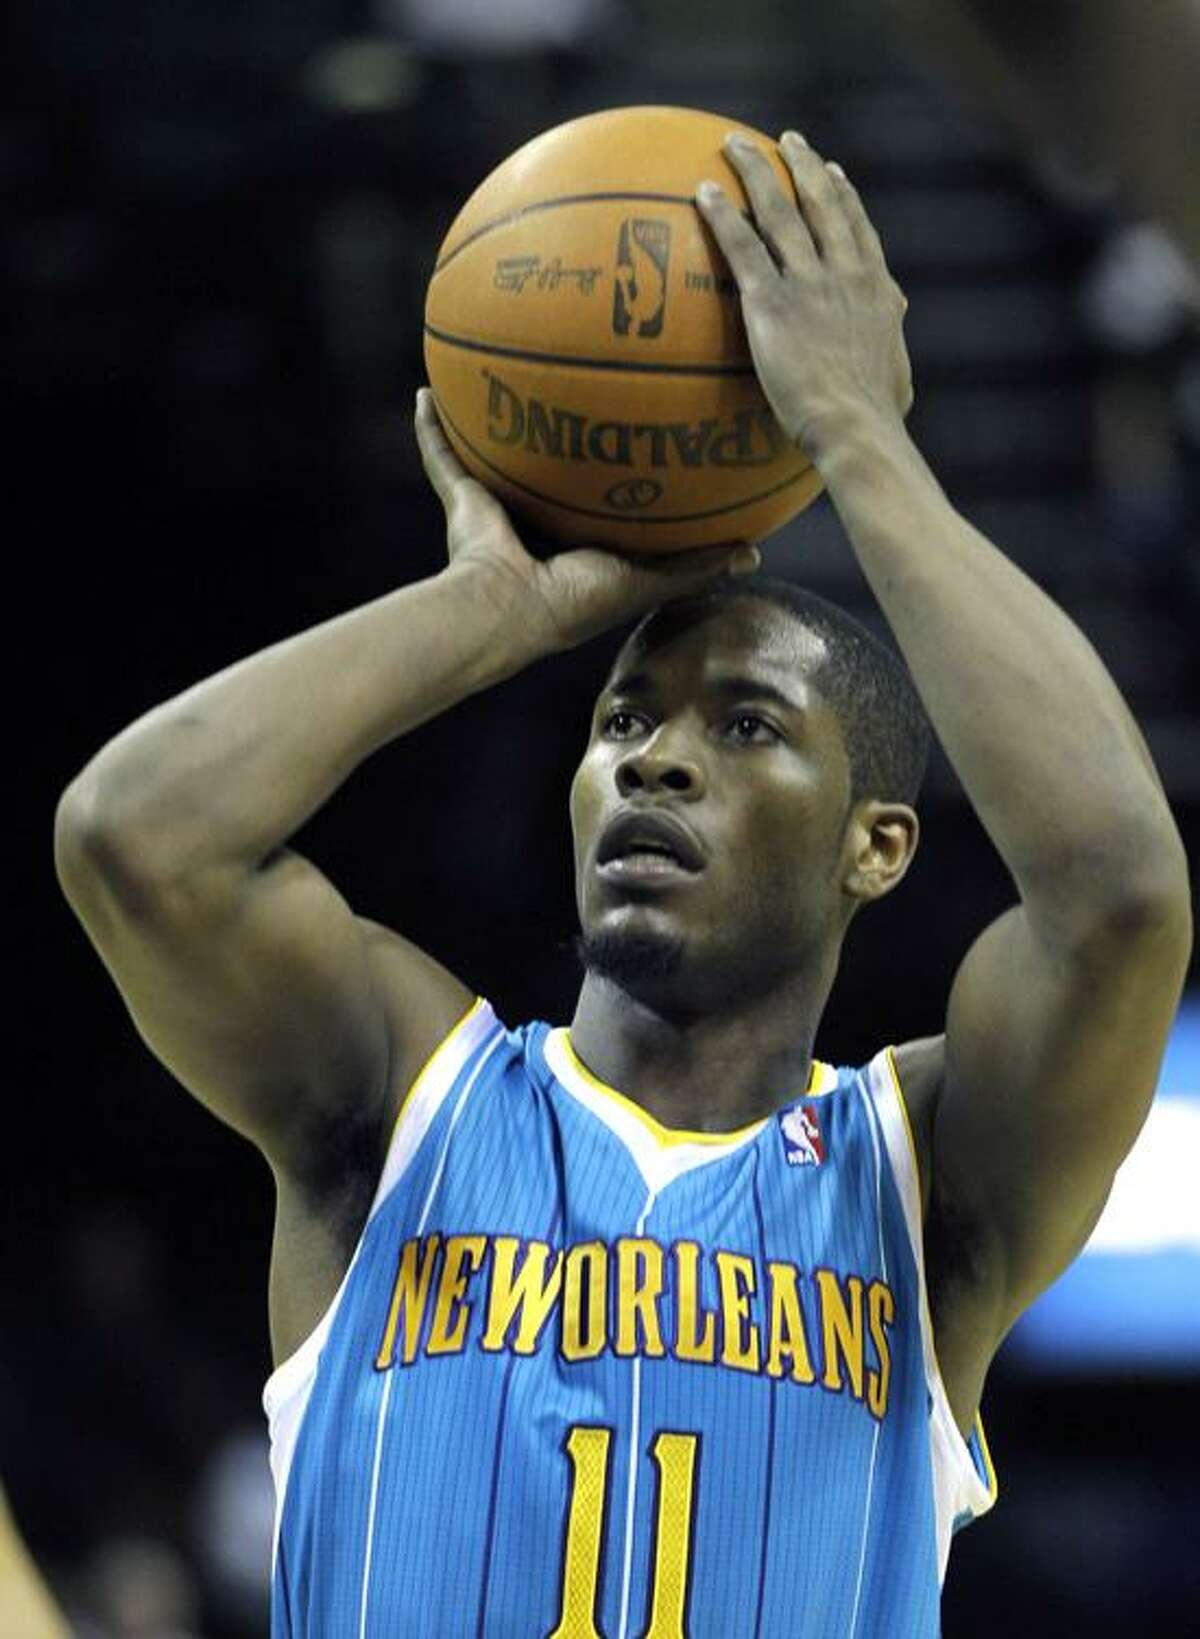 New Orleans Hornets guard Jerome Dyson attempts a free throw the first half of an NBA basketball game against the Memphis Grizzlies in Memphis, Tenn., Wednesday, April 18, 2012. (AP Photo/Danny Johnston)